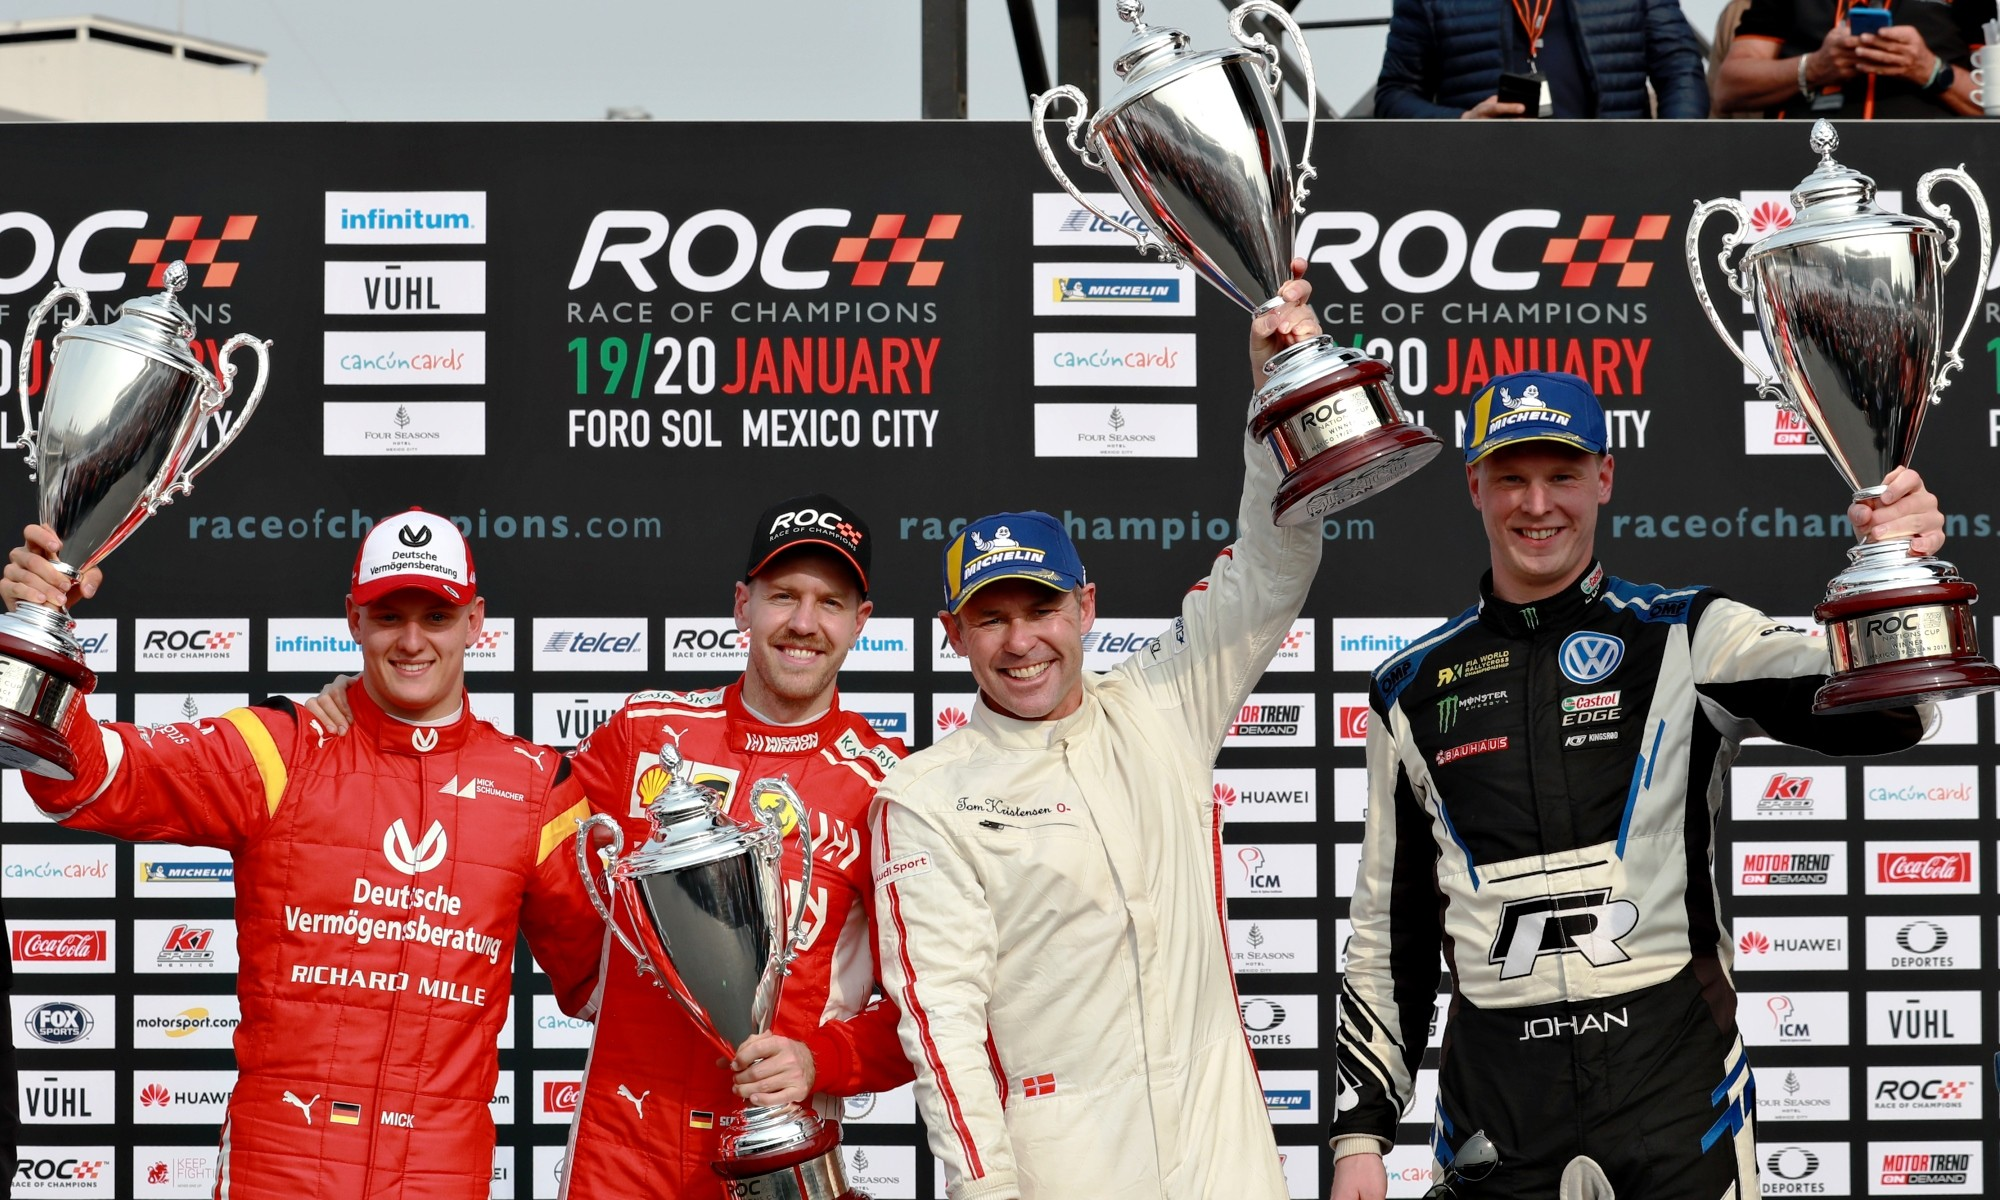 2019 Race of Champions, Nations Cup winners